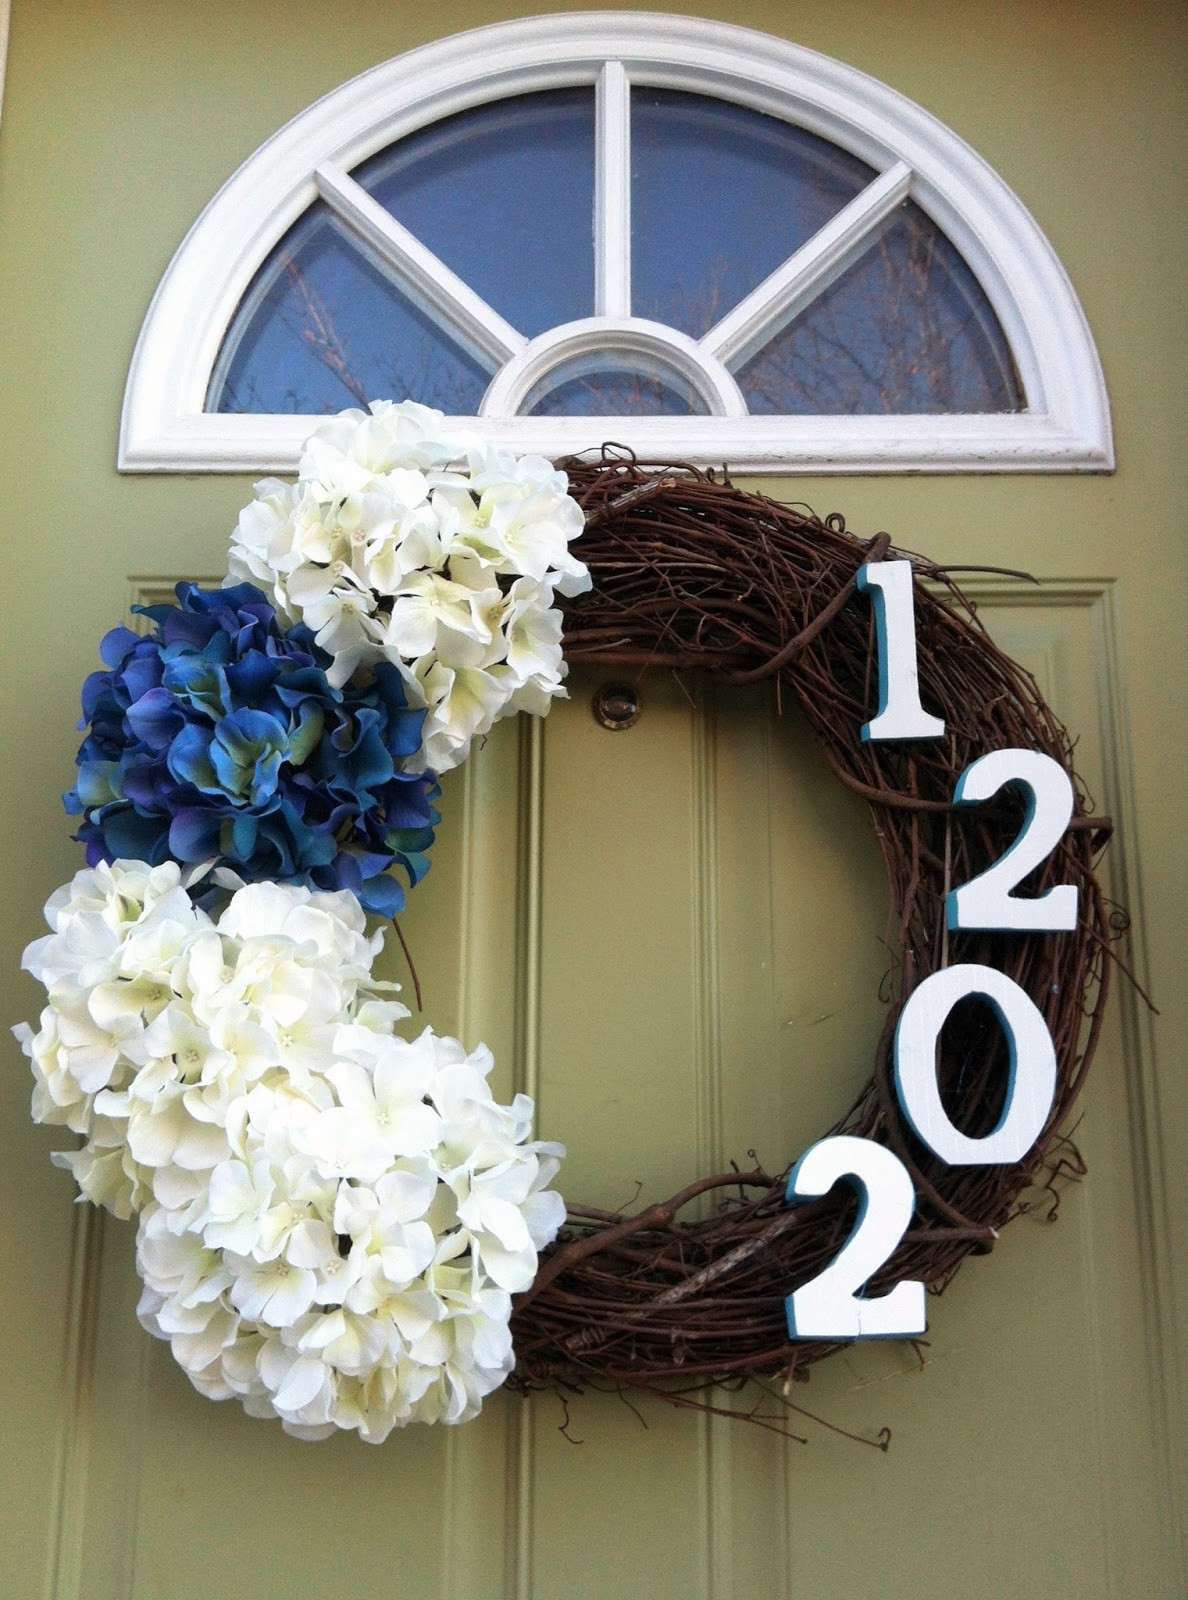 Best ideas about DIY Spring Wreath . Save or Pin taylor made DIY spring wreath Now.